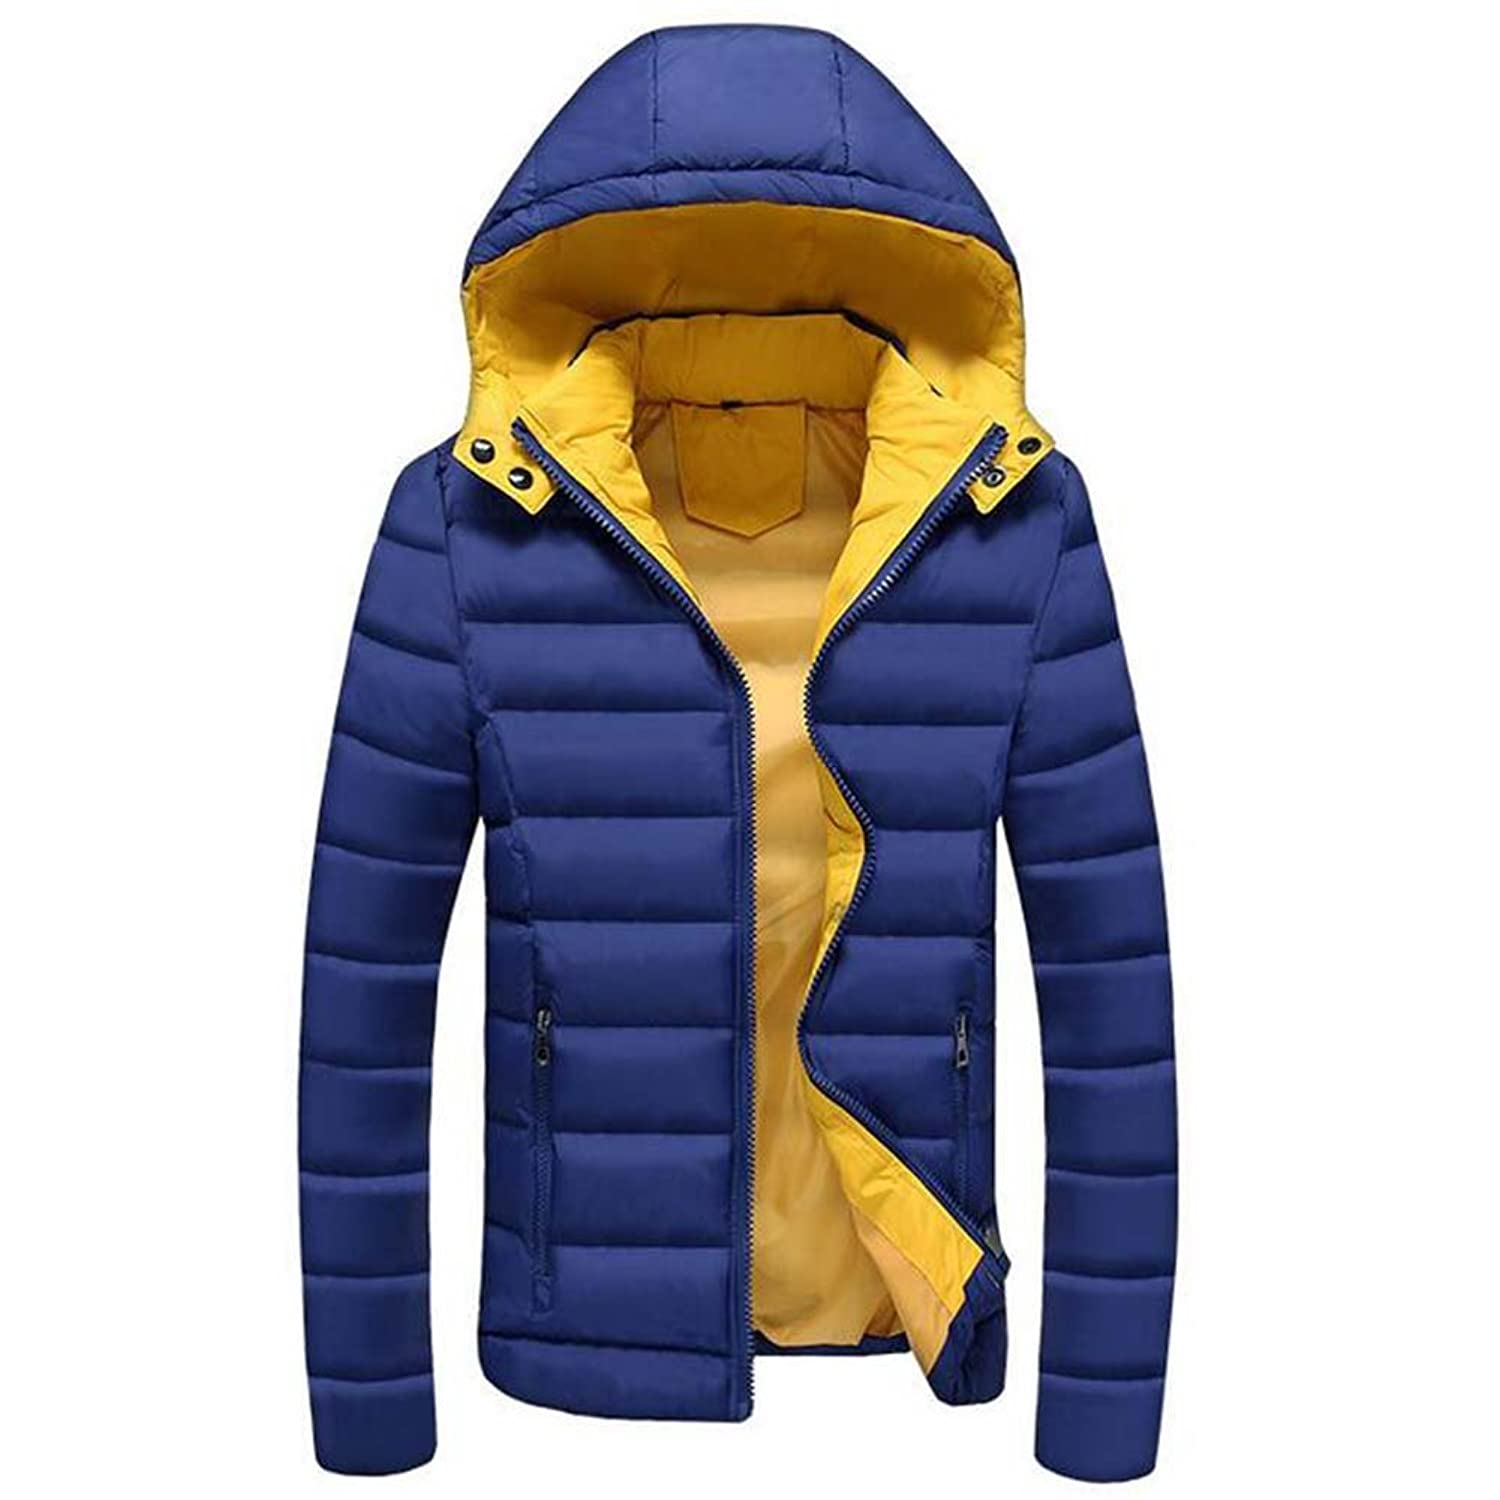 hibote Man Jacket Classical Warm Men Jacket Zipper Hat Detachable Coat Dark Blue 3XL